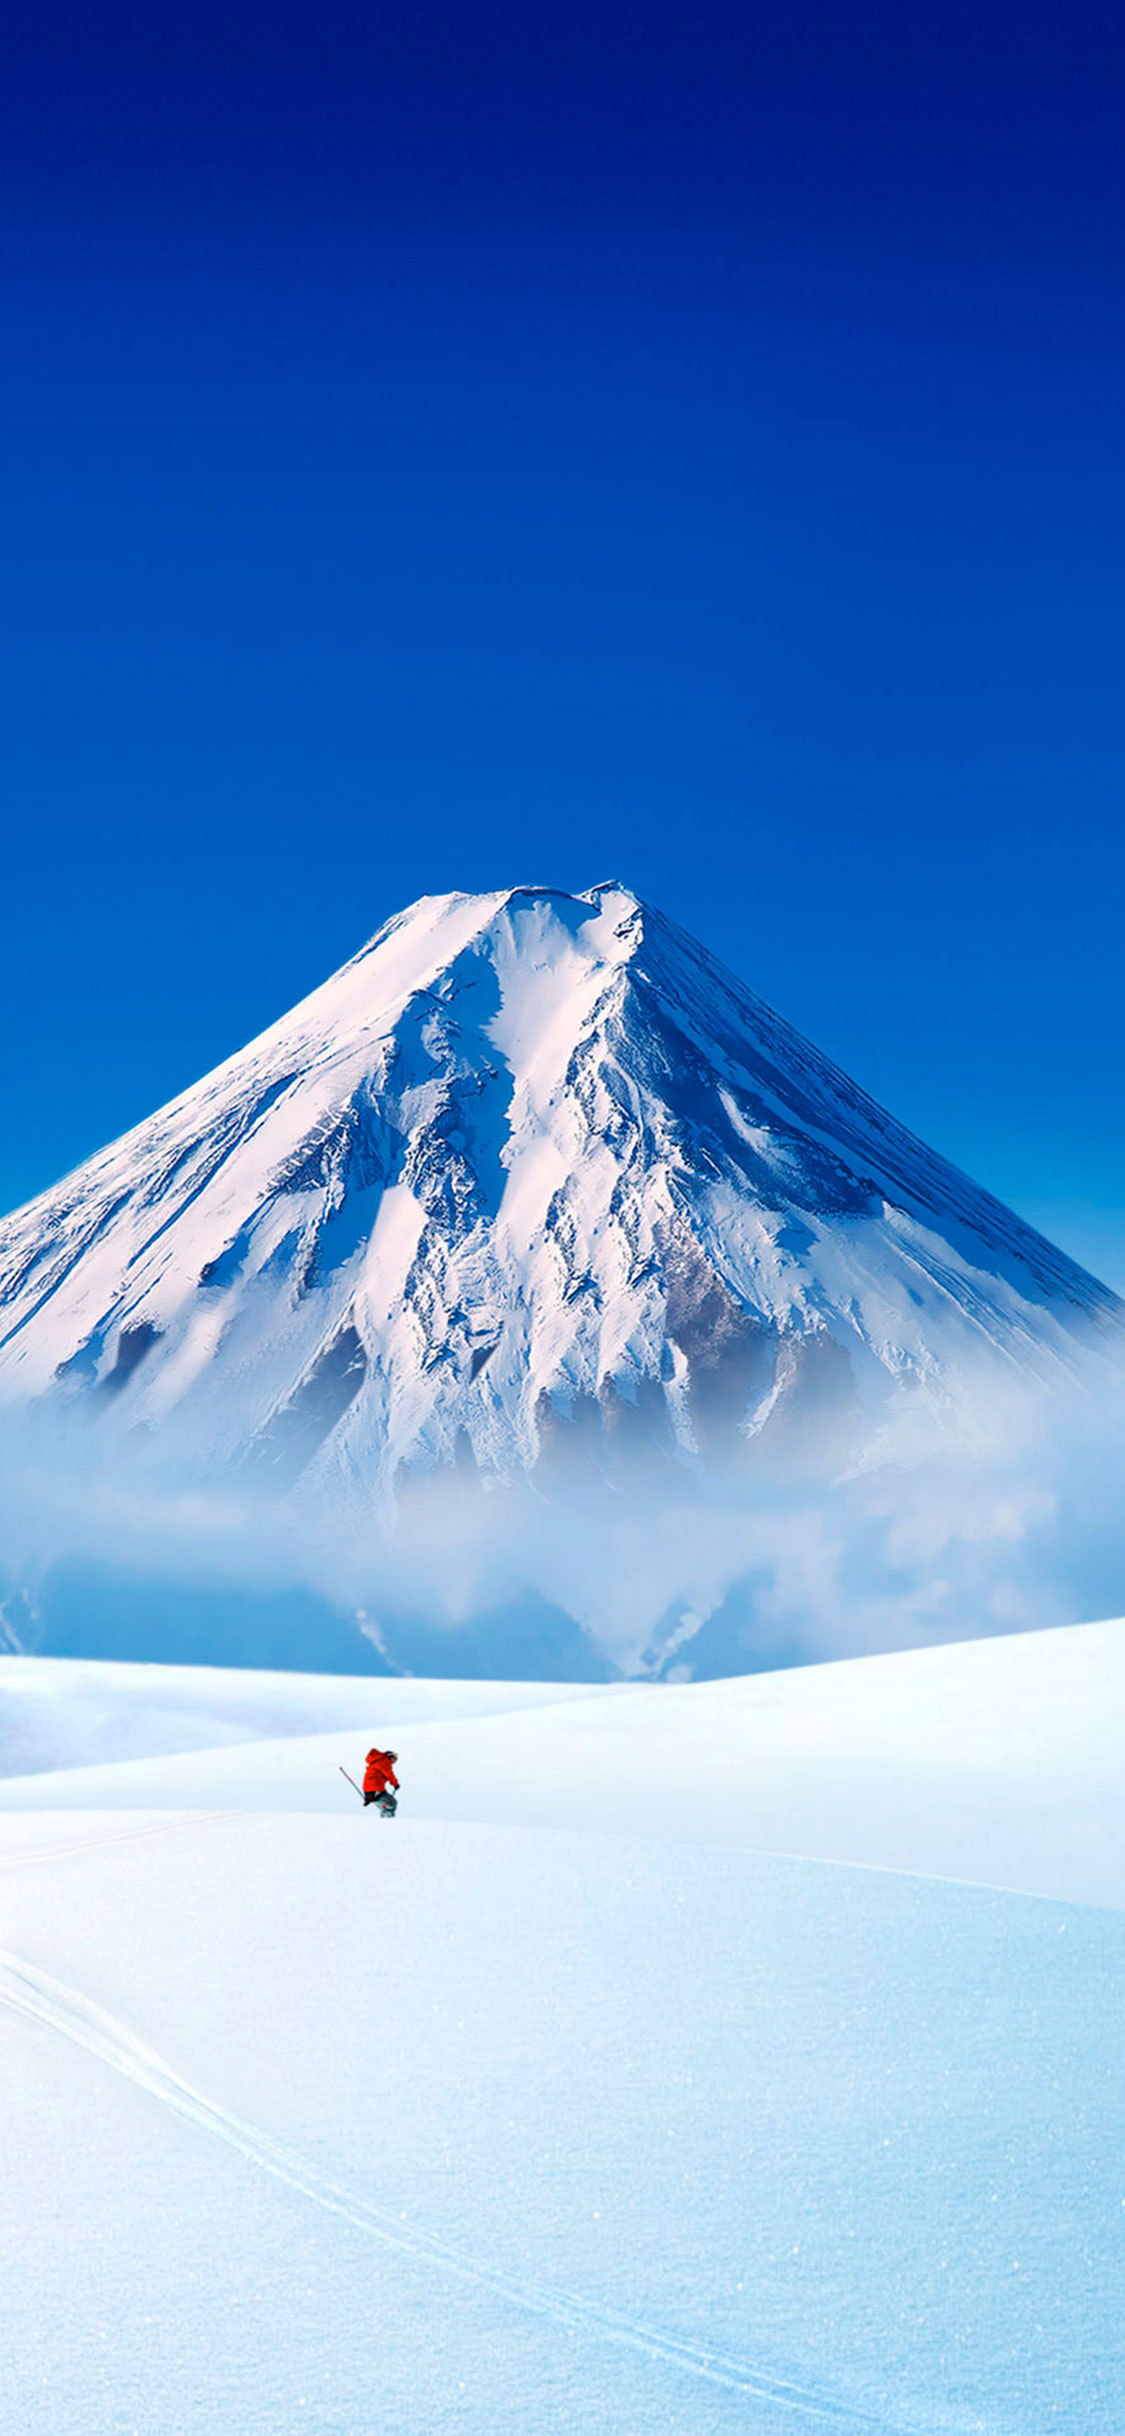 iPhone wallpapers volcano snow Fonds d'écran iPhone du 28/05/2018